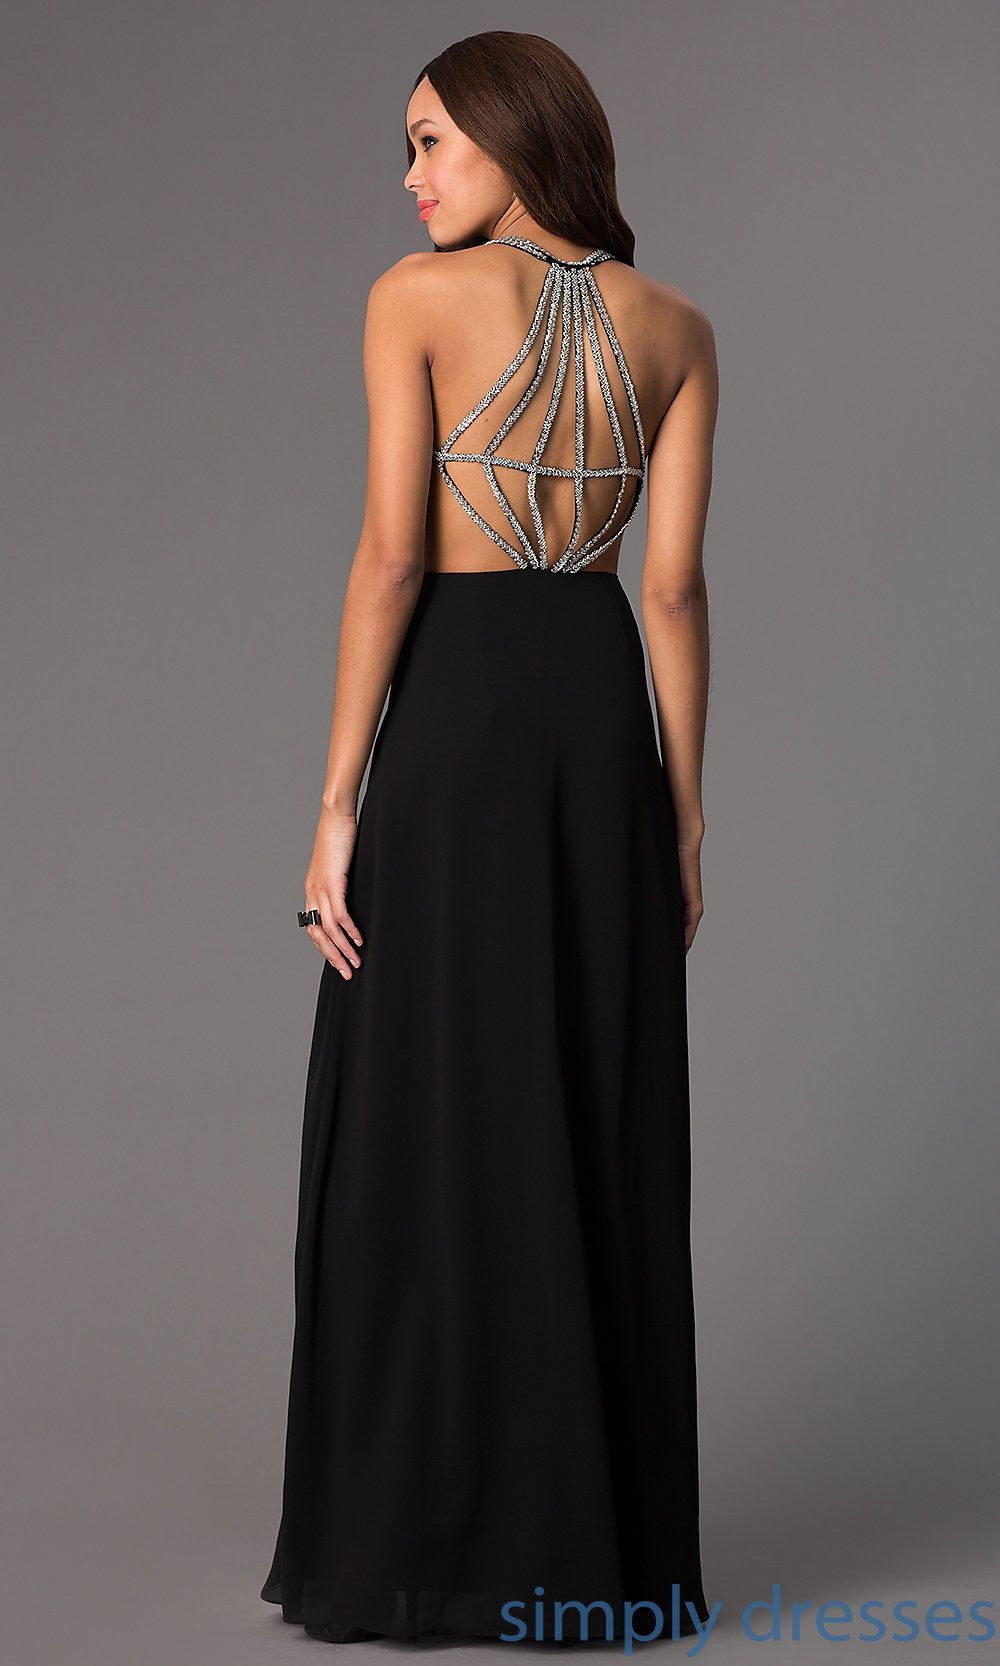 Long Chiffon Gown with Beaded Open Back | Dress formal, Dress casual ...